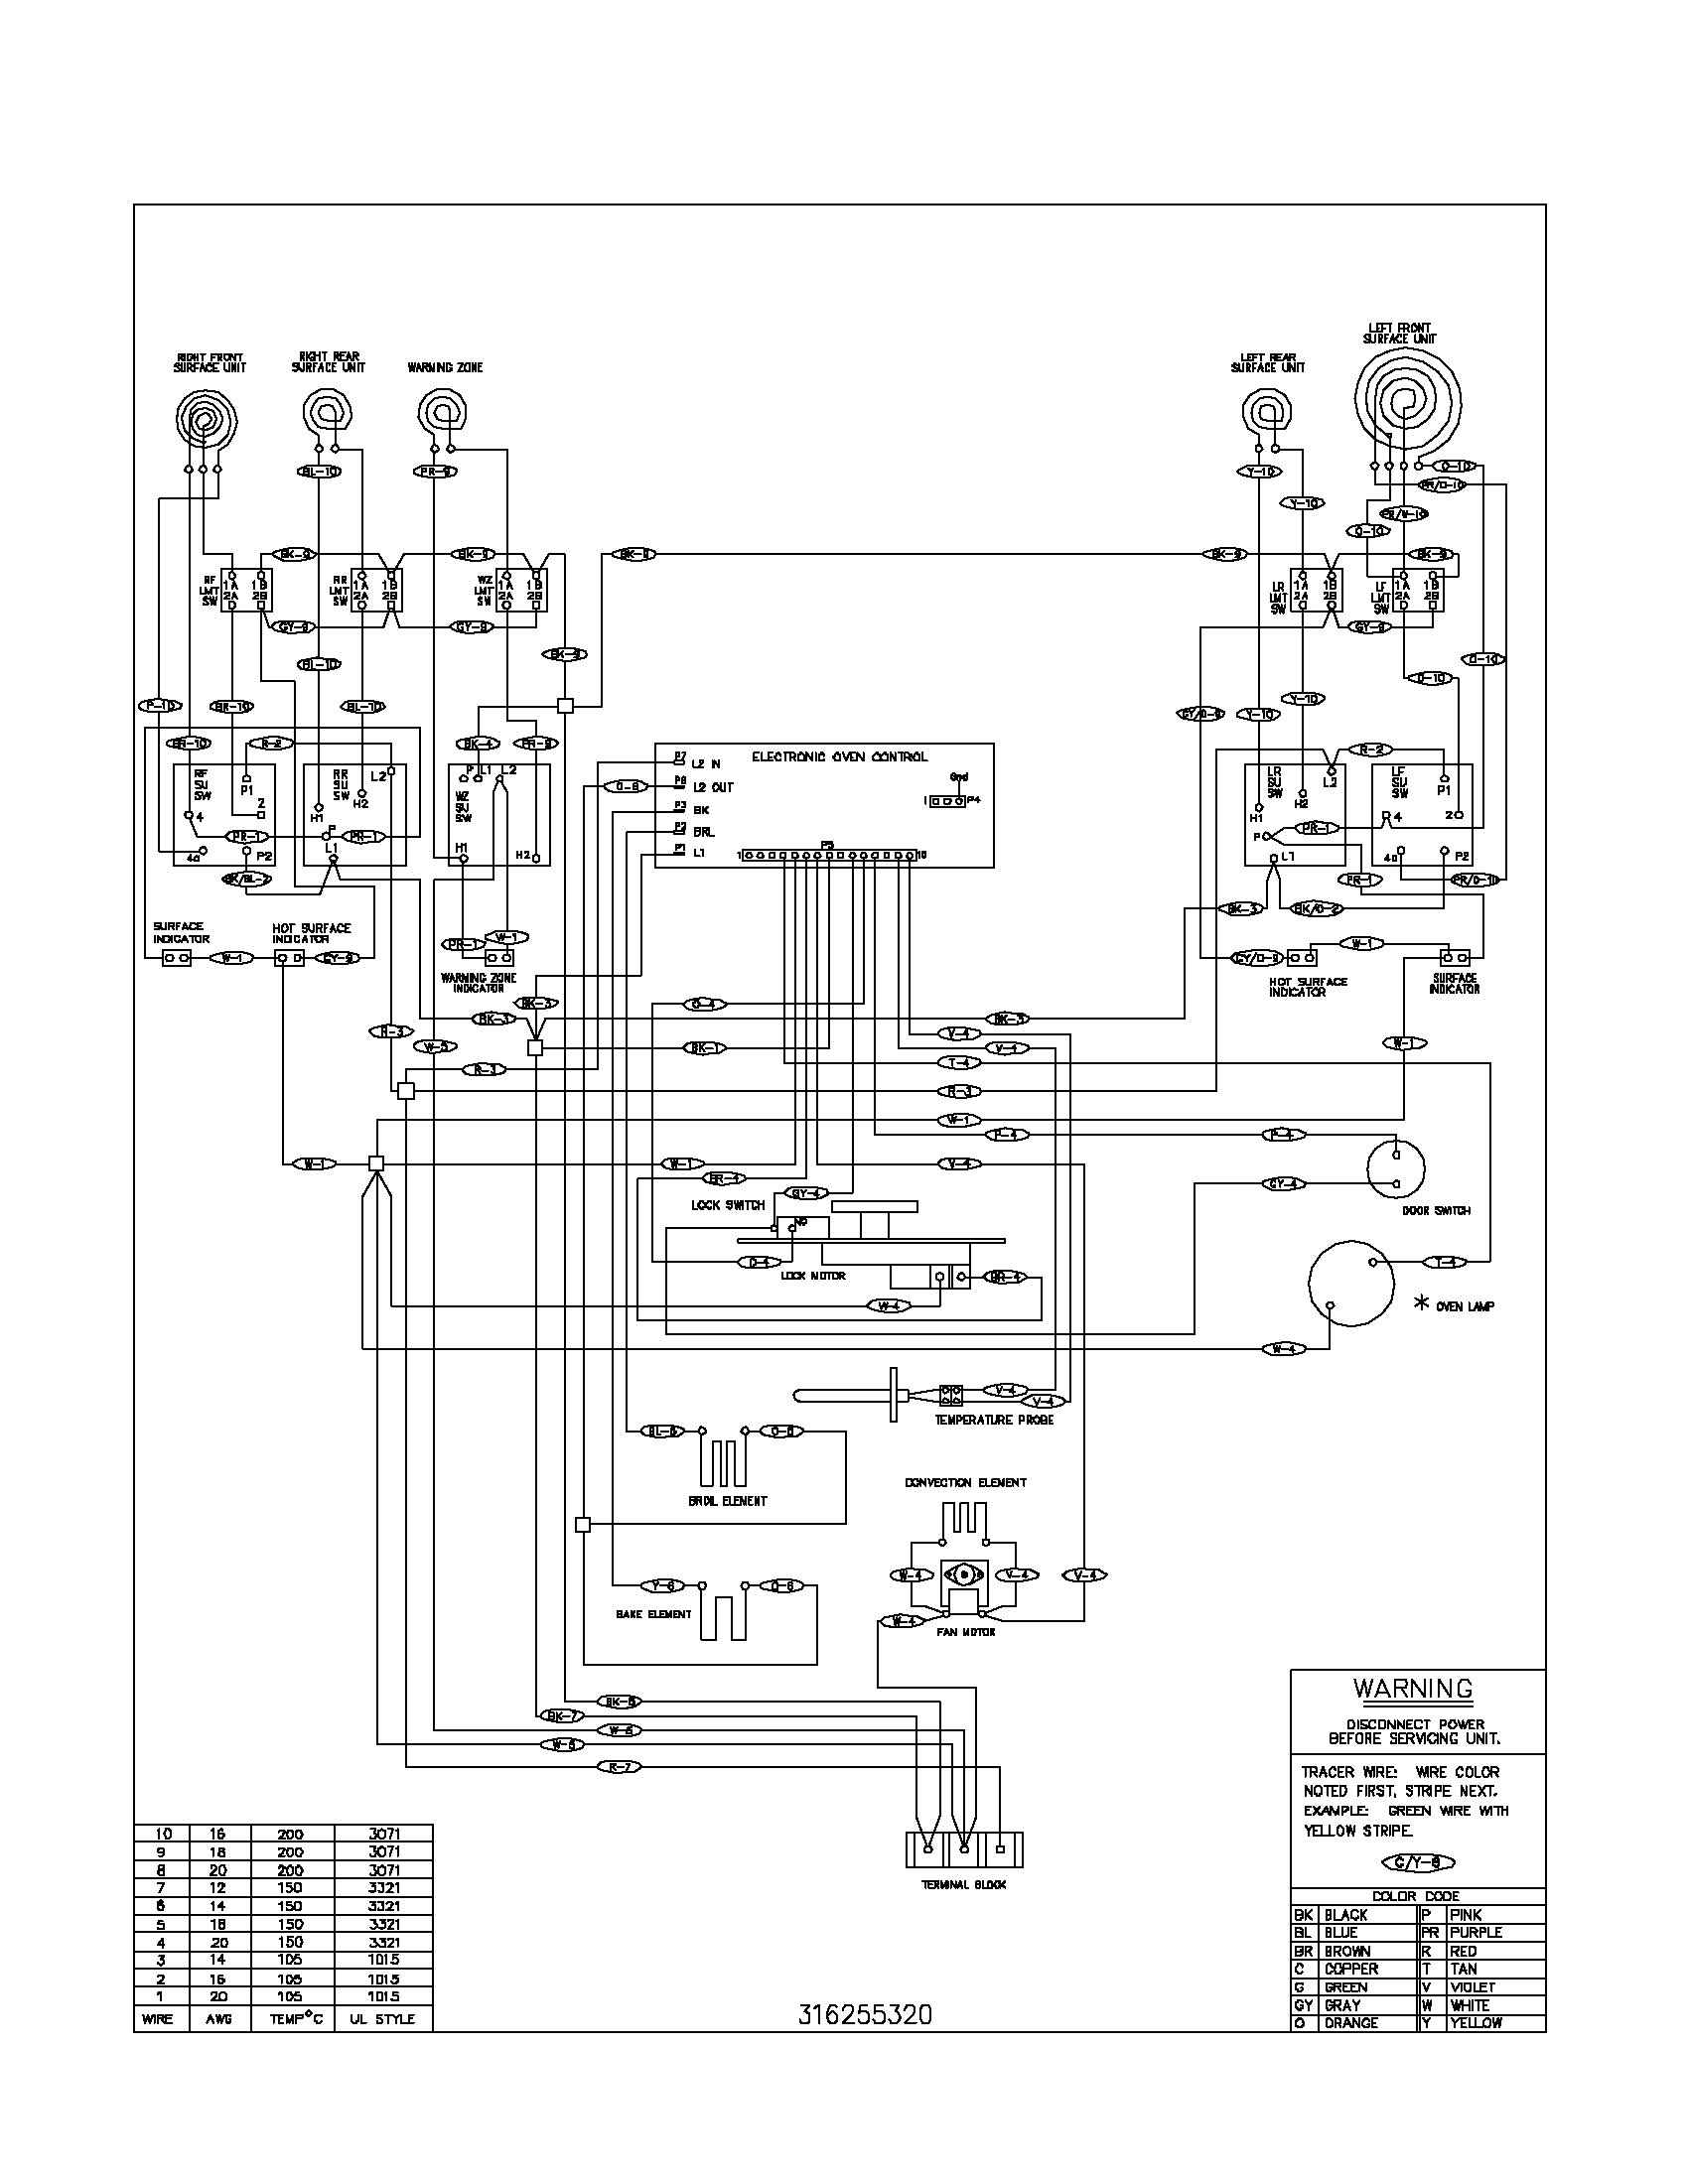 6 Volt Flasher Wiring Diagram : 29 Wiring Diagram Images